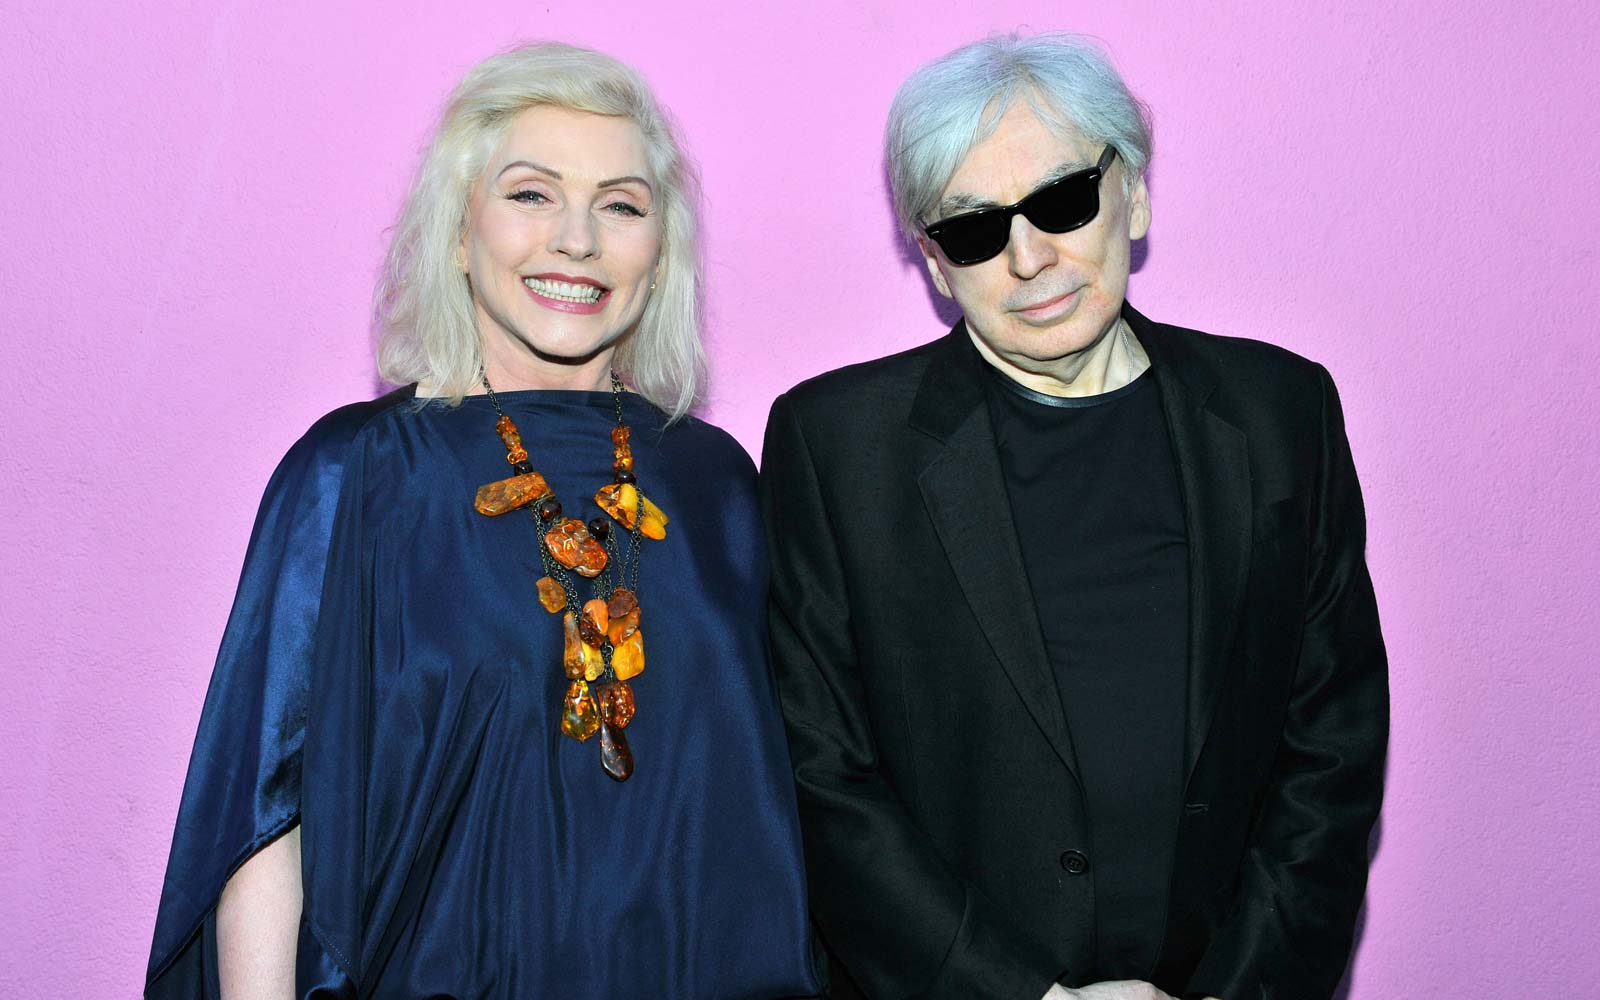 Blondie's Debbie Harry and Chris Stein on What It's Really Like to Tour in a Rock Band